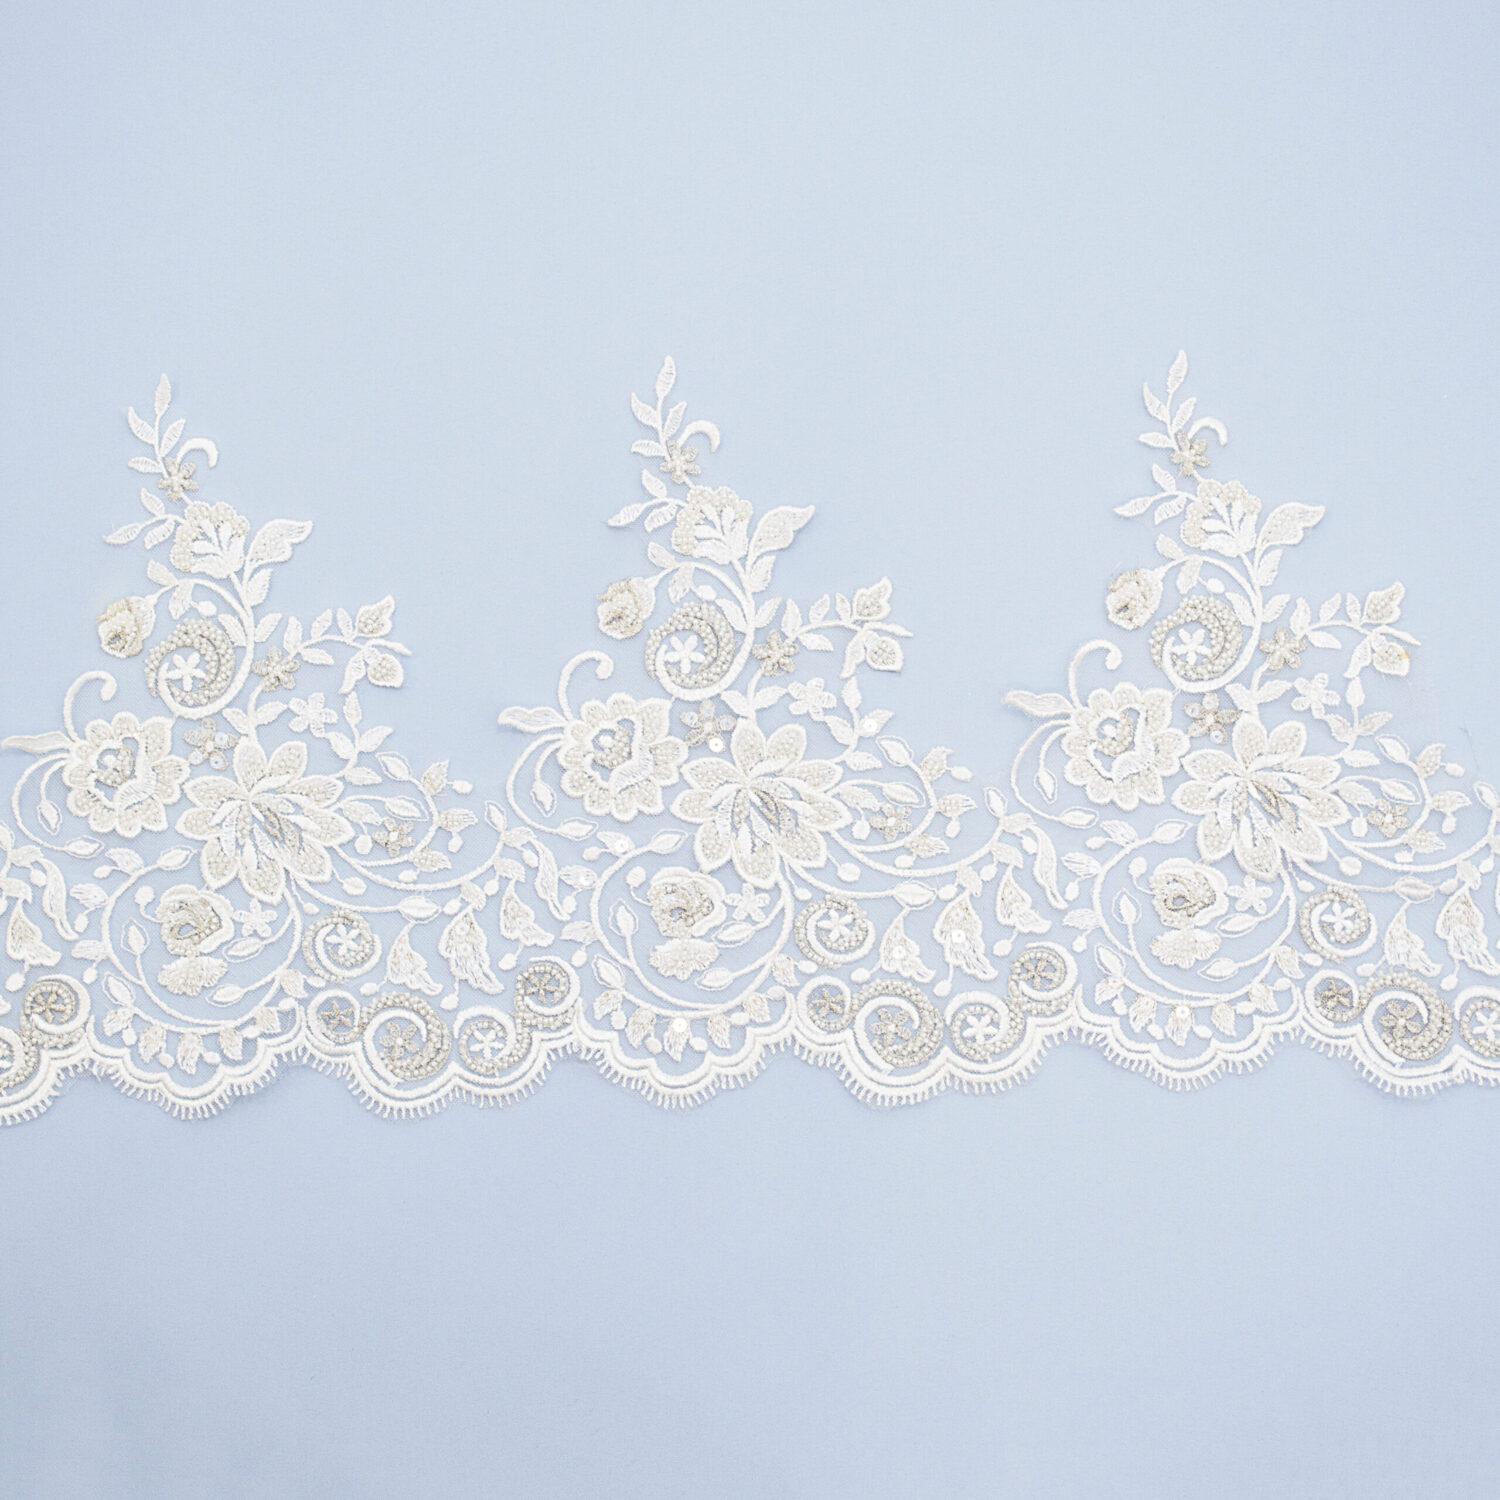 Embroidered lace trim AM14040DQF2-N44